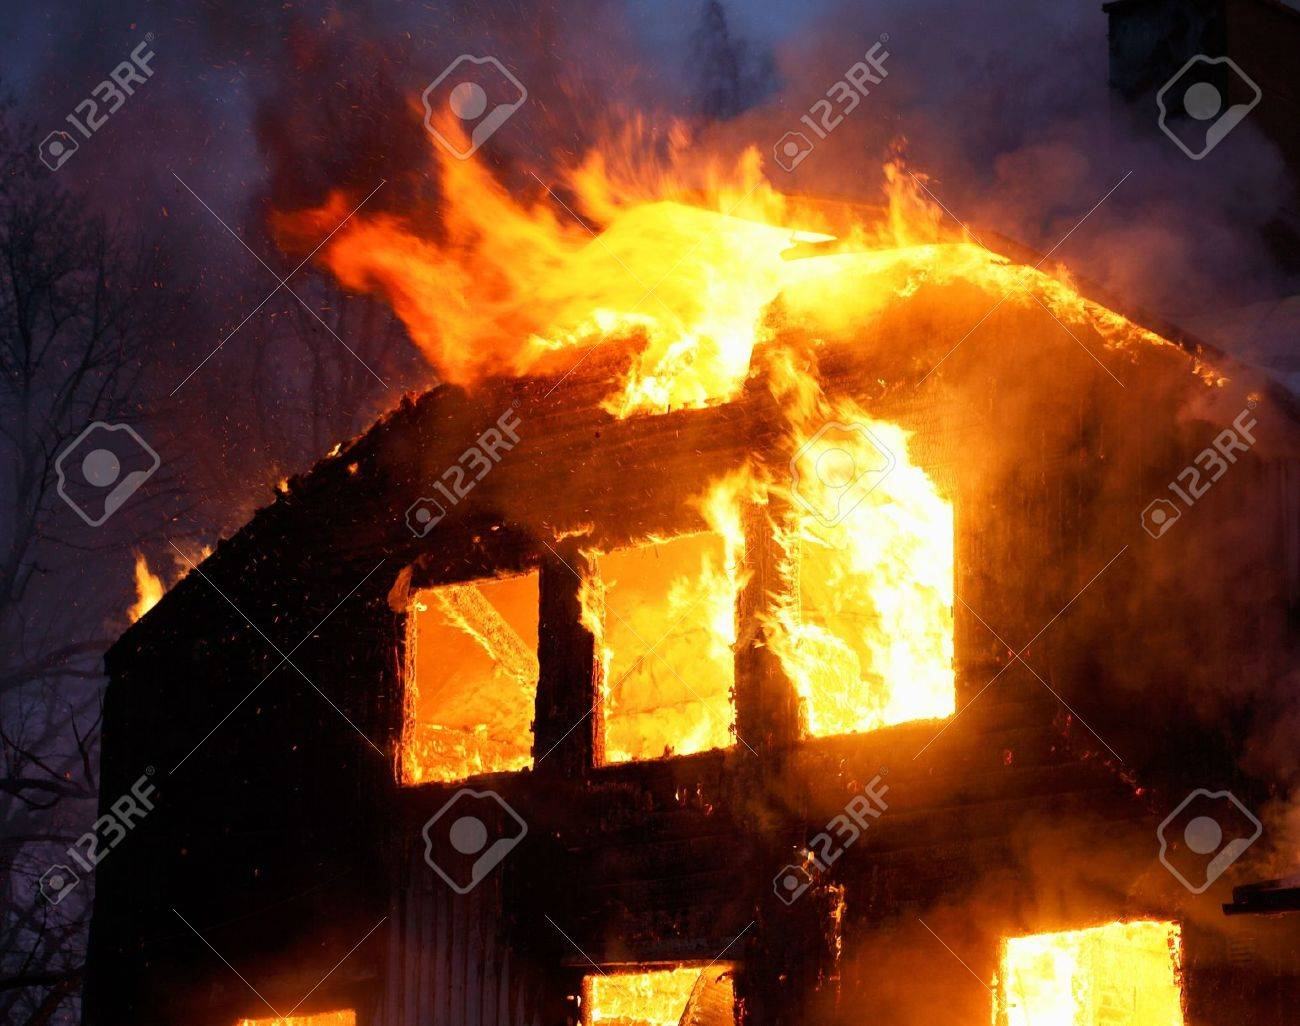 Wooden house buring. Stock Photo - 3422862